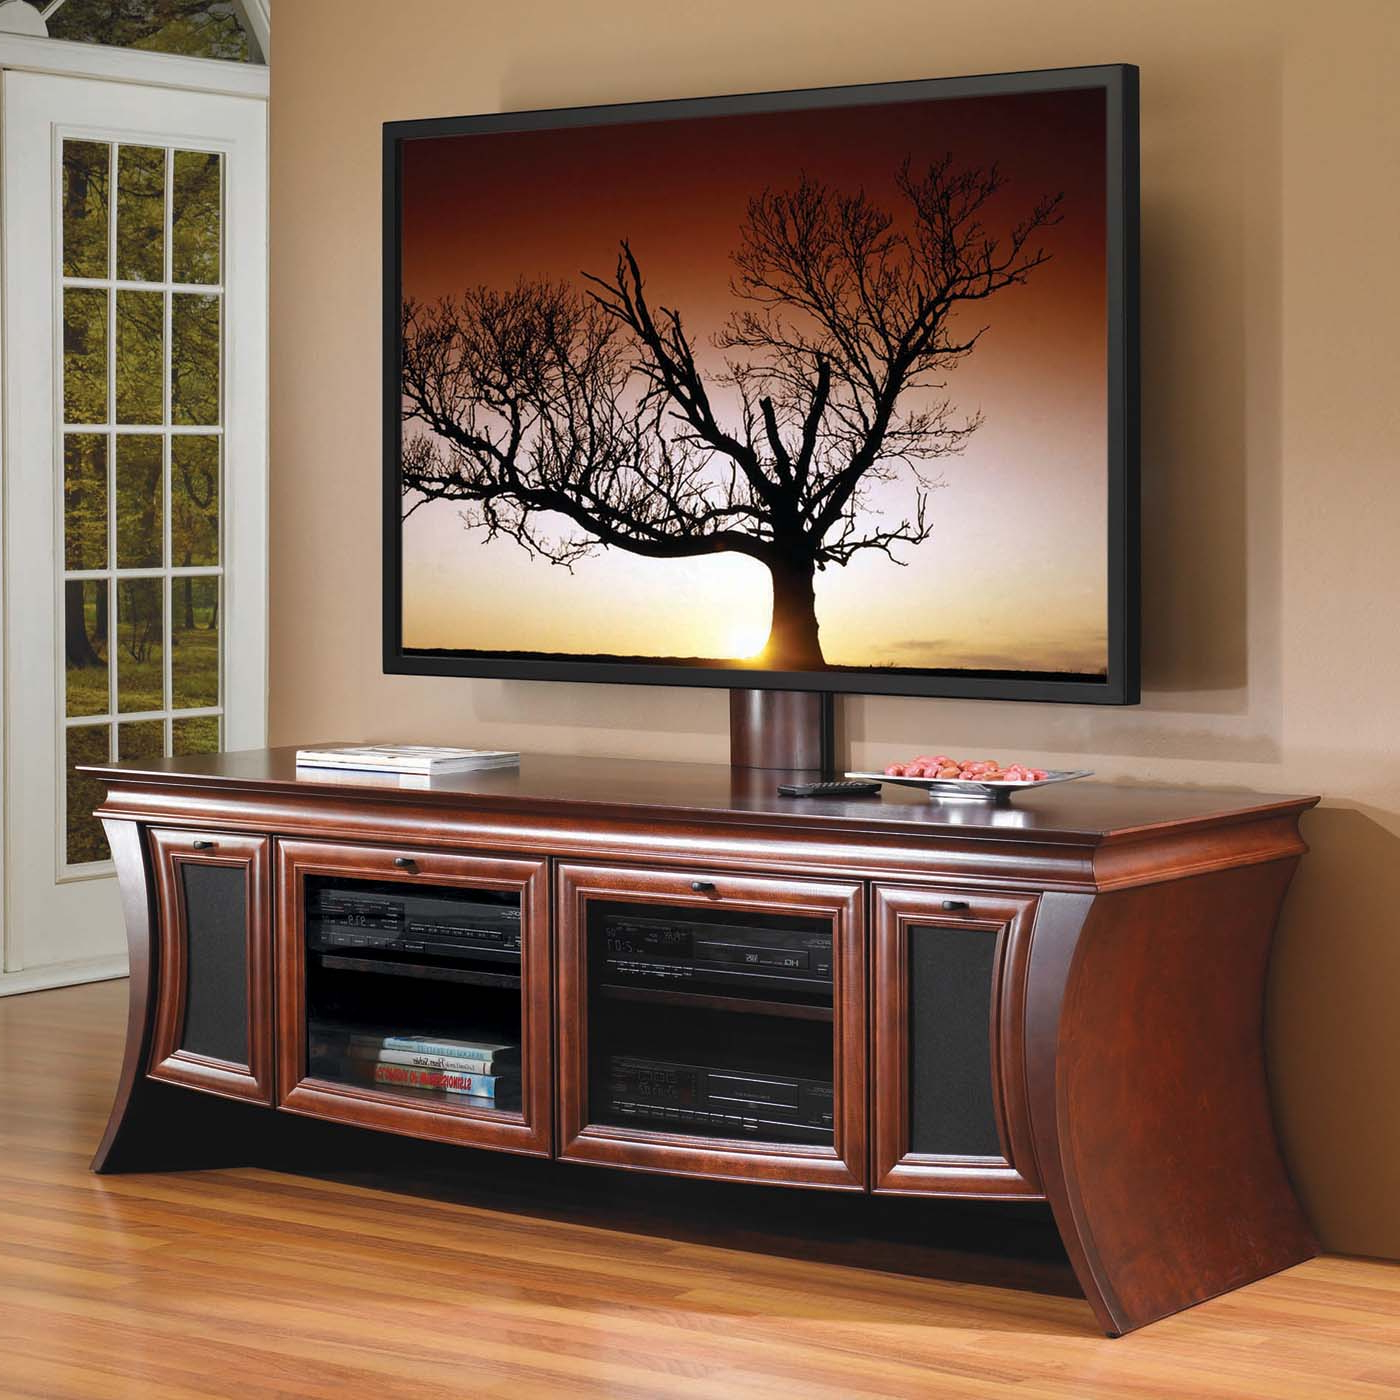 Most Popular Amish Tv Stand Ohio Solid Wood Media Console Corner Entertainment With Regard To Wooden Tv Stands With Glass Doors (View 9 of 20)